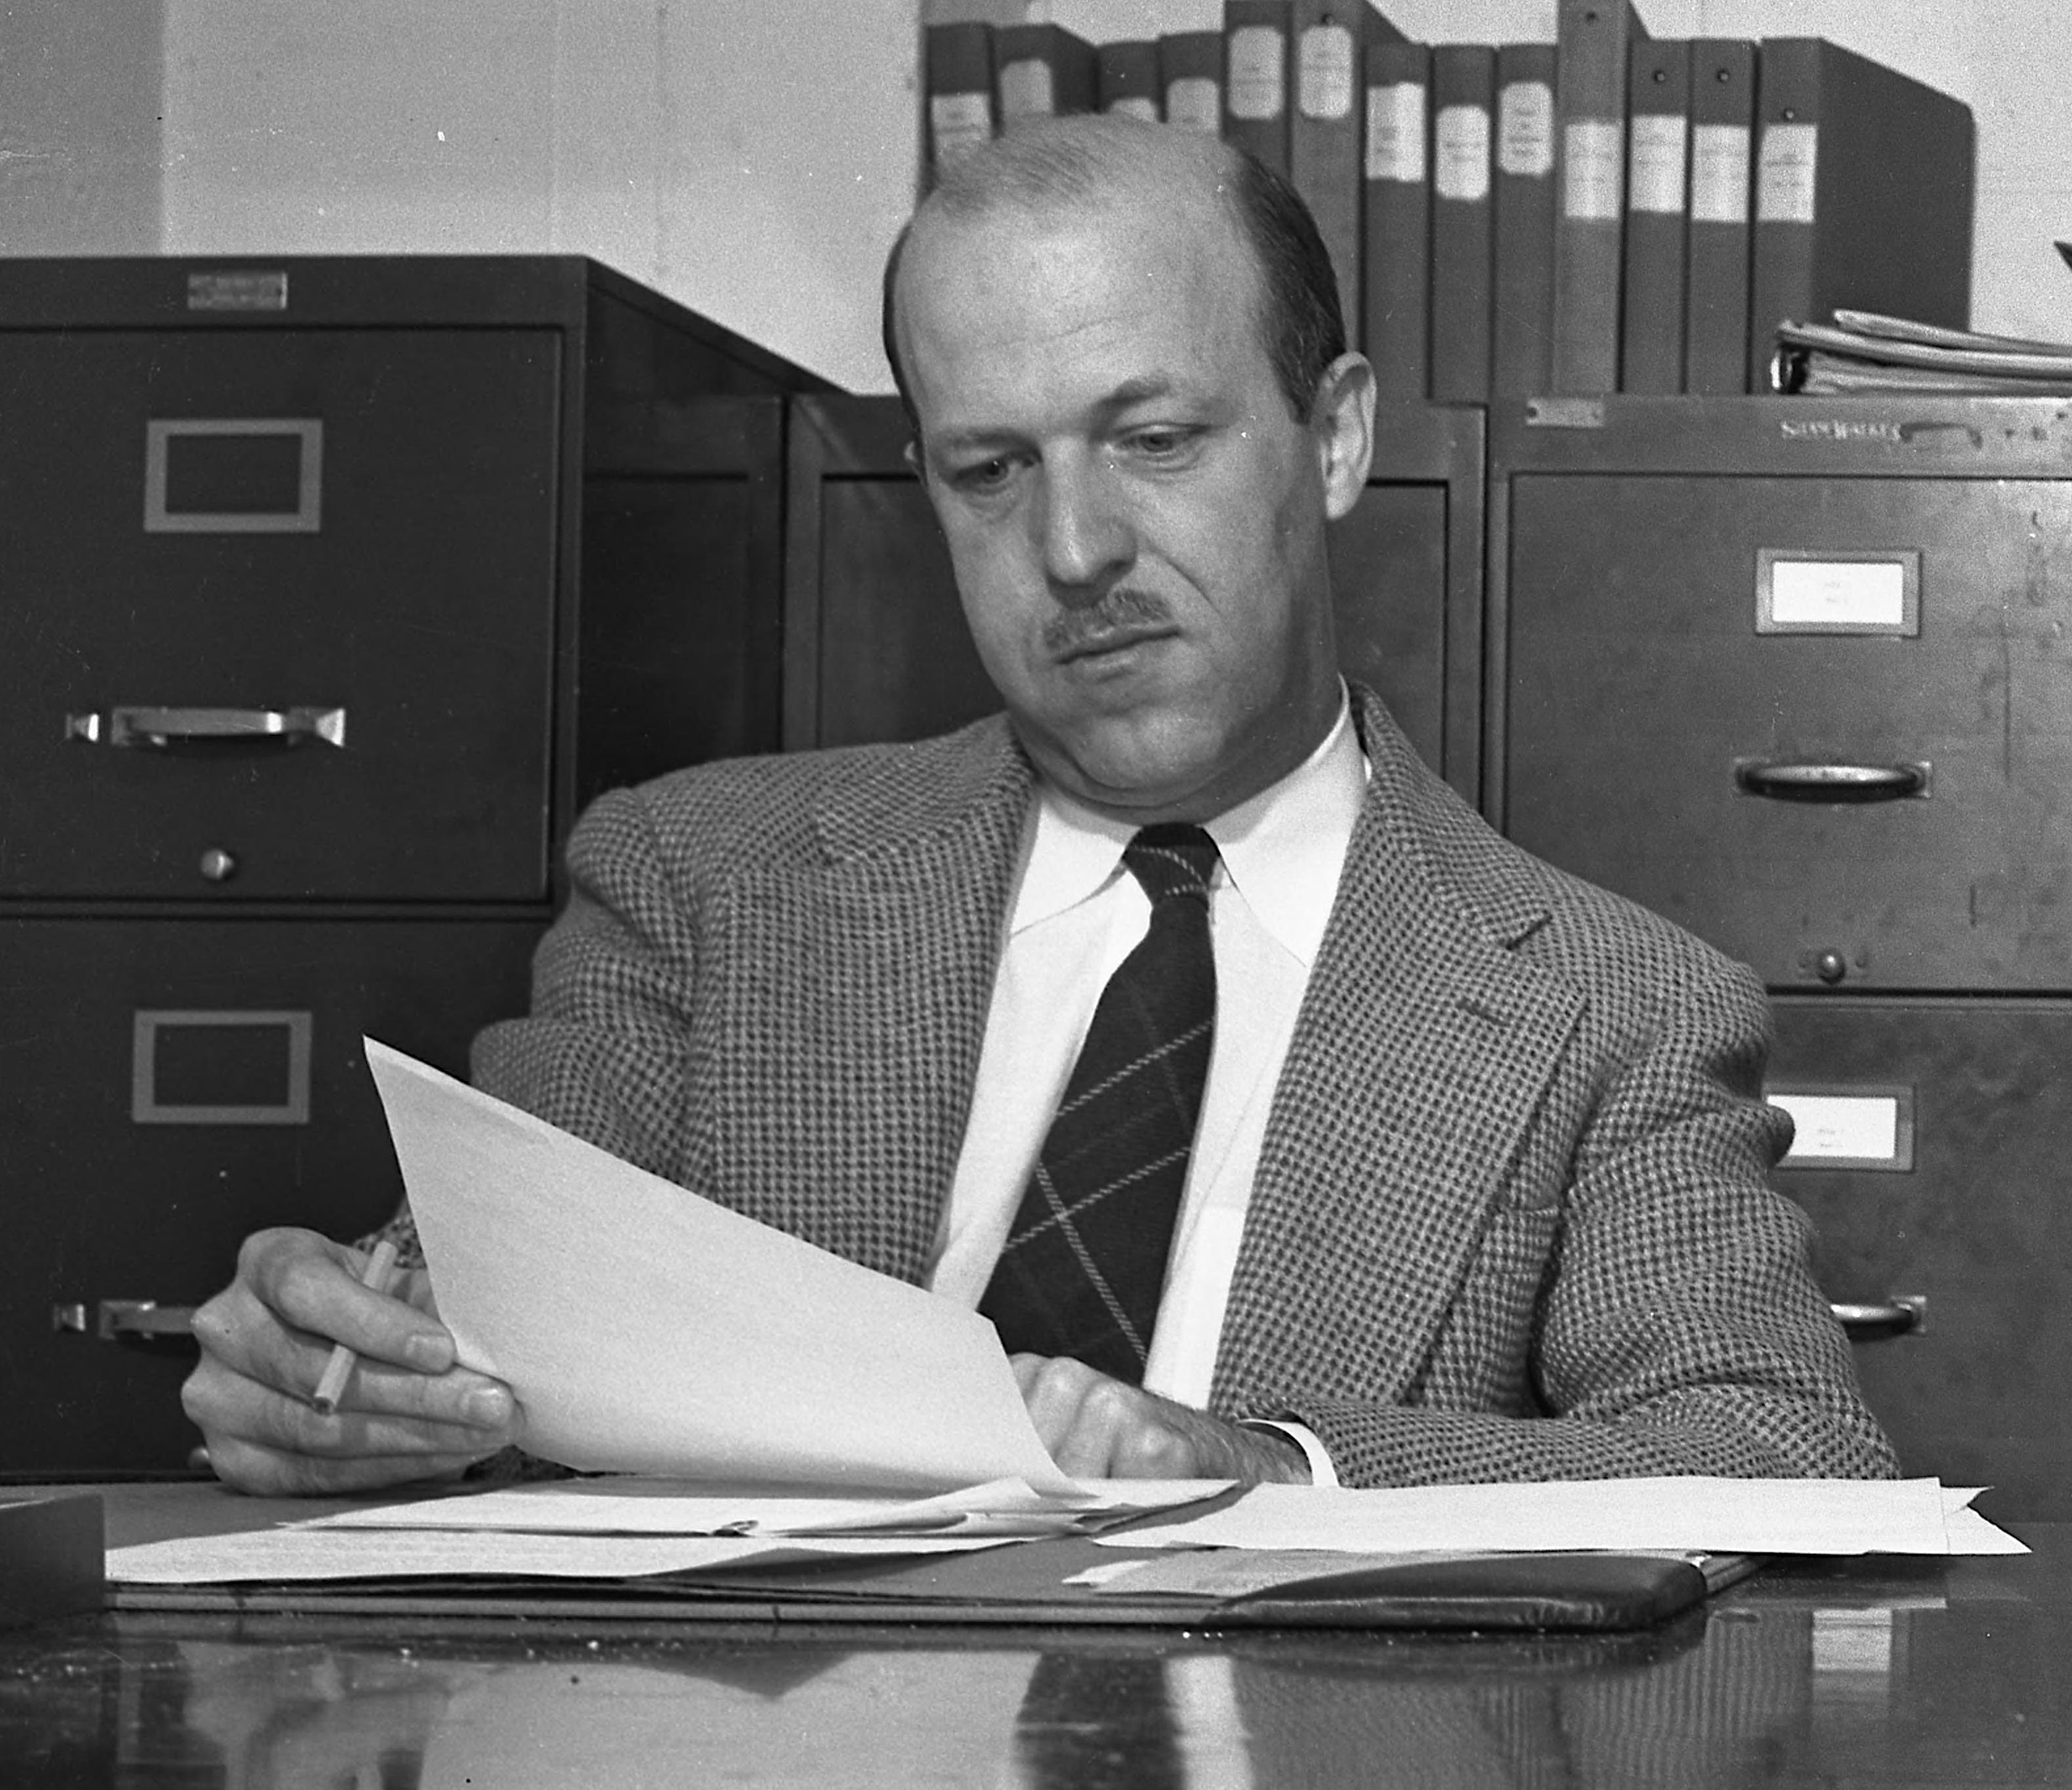 Campbell at the University of Michigan going over the plans of a survey in 1948